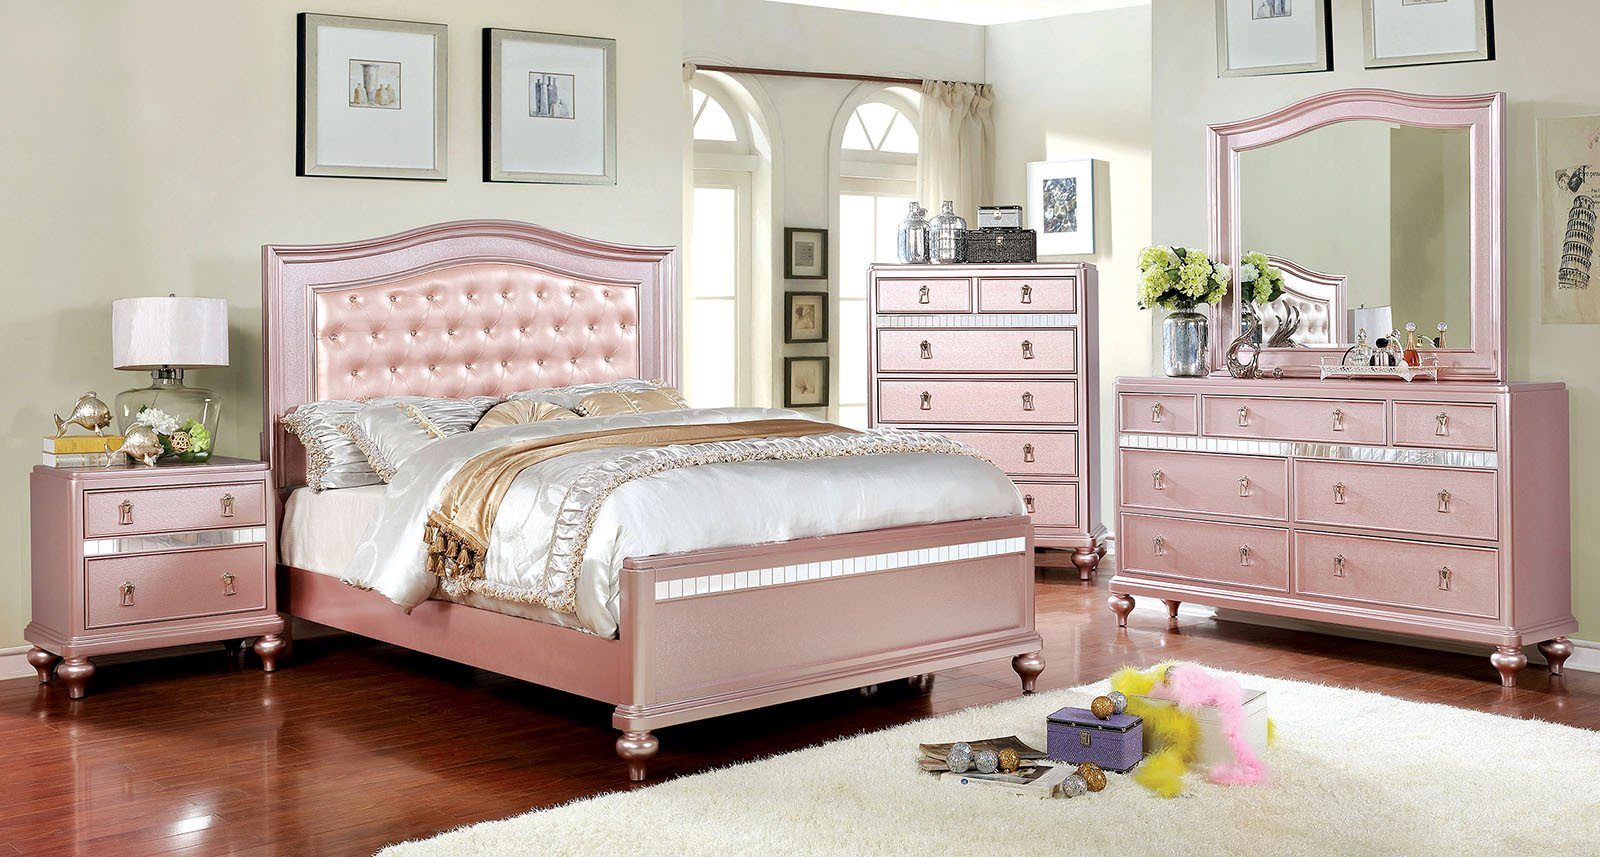 Cheap Queen Size Bedroom Set Luxury Ariston Rose Gold Finish Queen Size Bed with Mirrored Trim Jeweled button Tufted Padded Leather Headboard